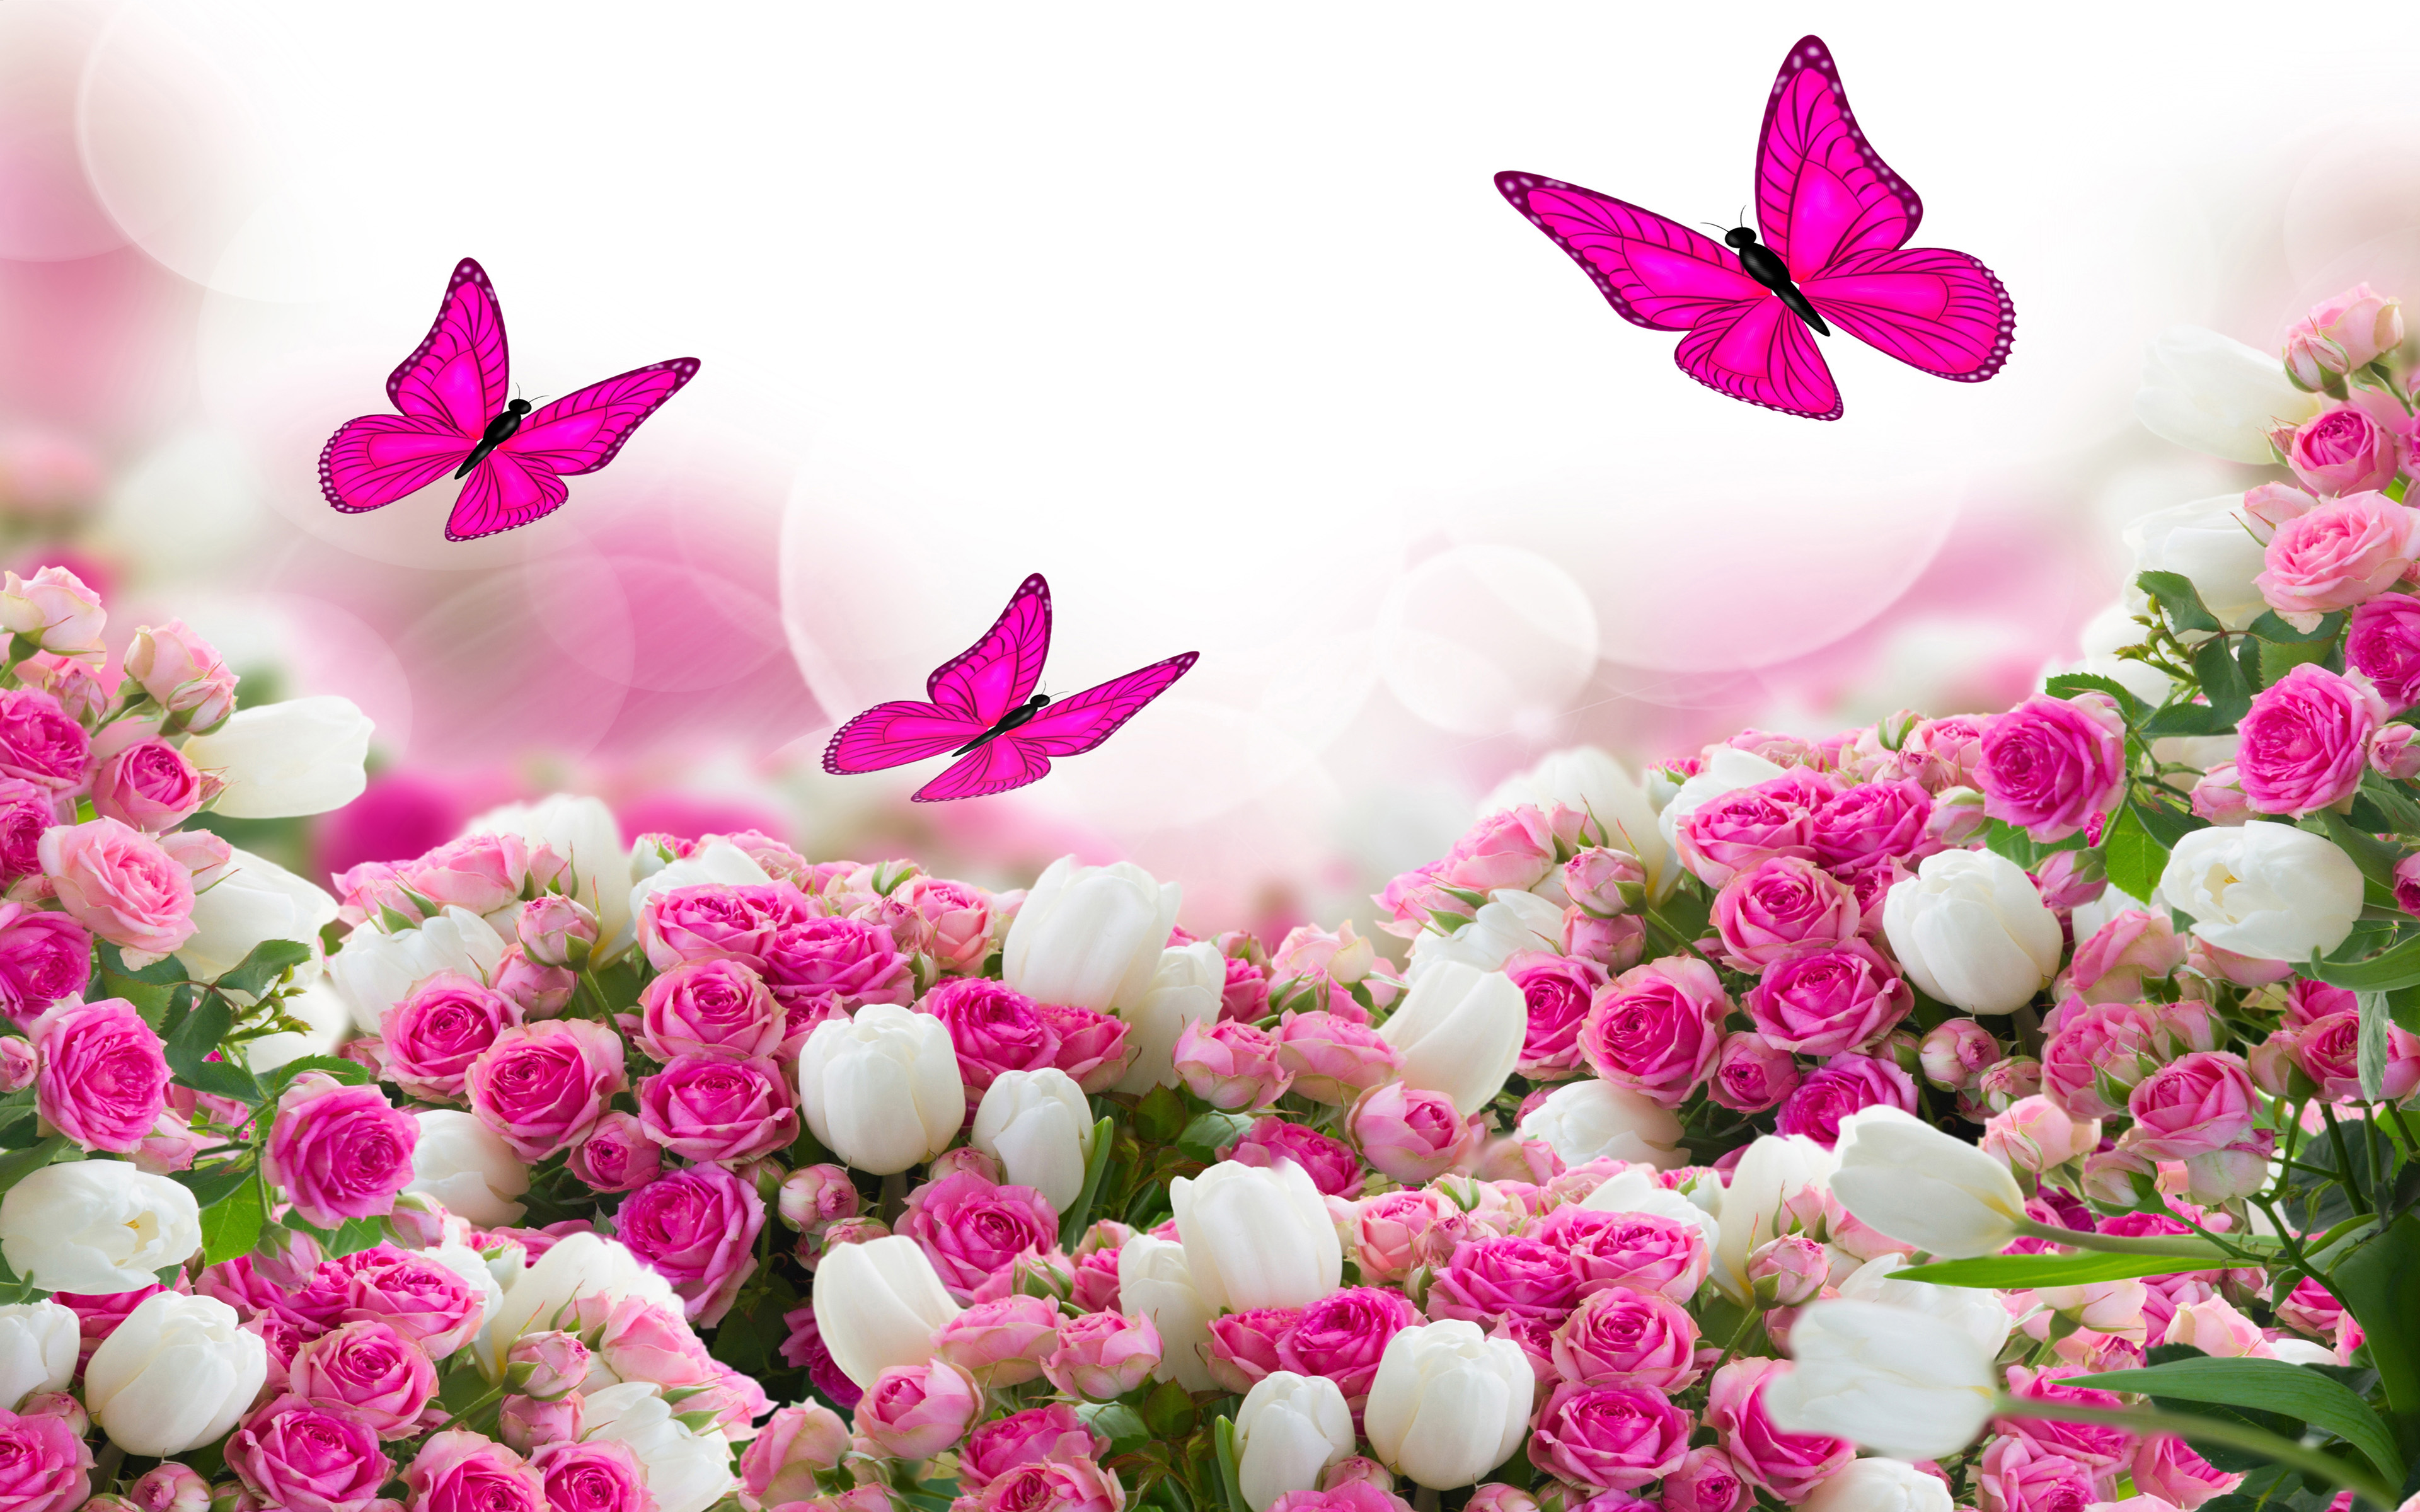 Roses And Butterflies 4k Ultra Hd Wallpaper Background Image 3840x2400 Id 997737 Wallpaper Abyss